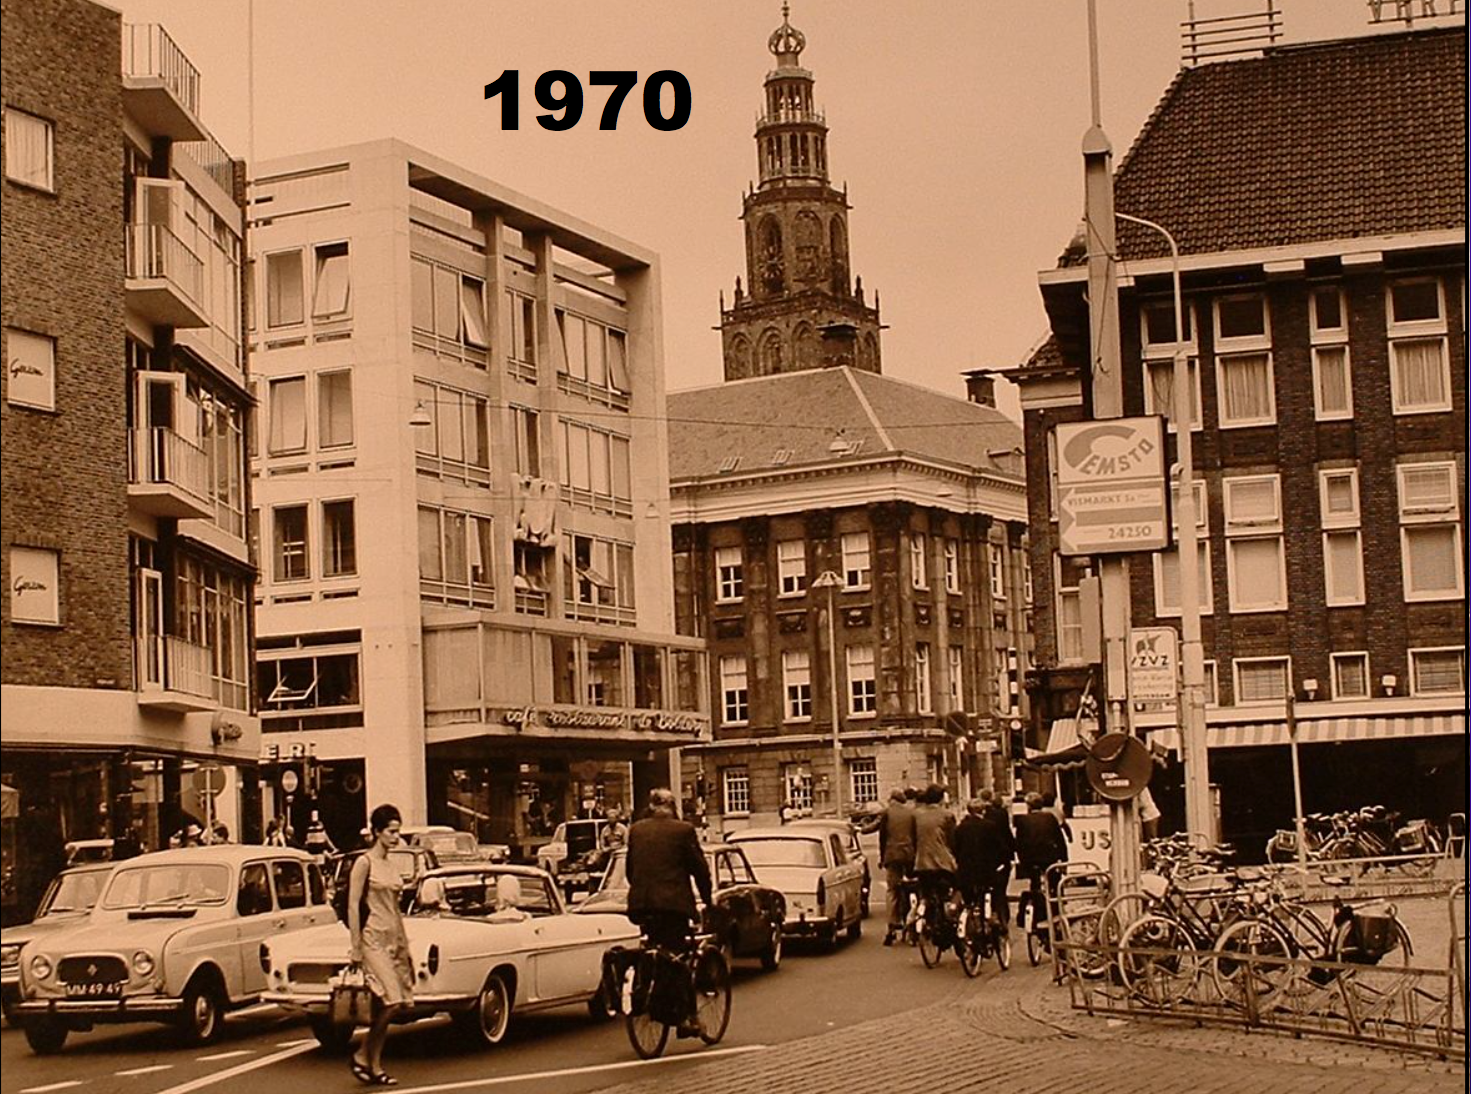 Central City, 1970.  Image courtesy of Karsijns and Schilt, 2003.